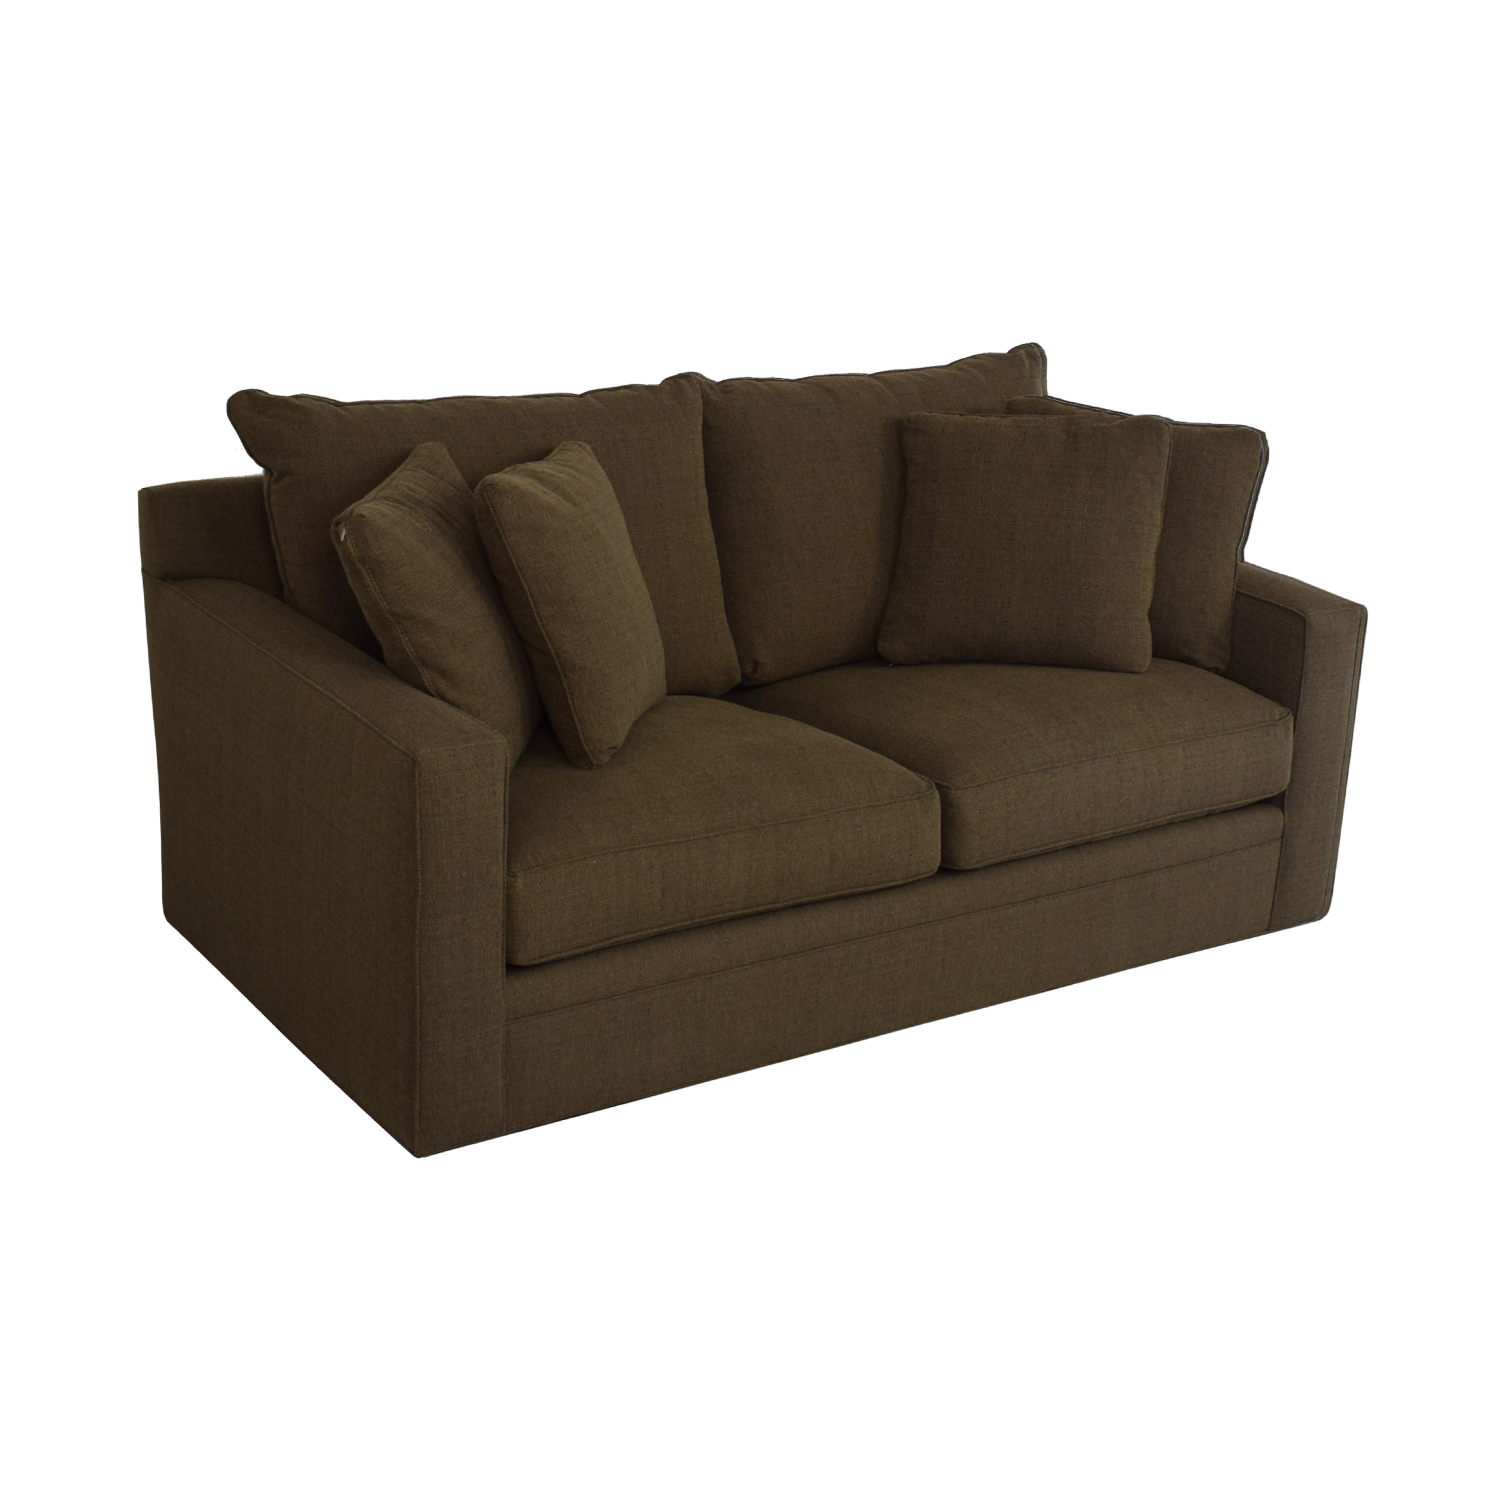 Room & Board Room & Board Orson Guest Select Sleeper Sofa